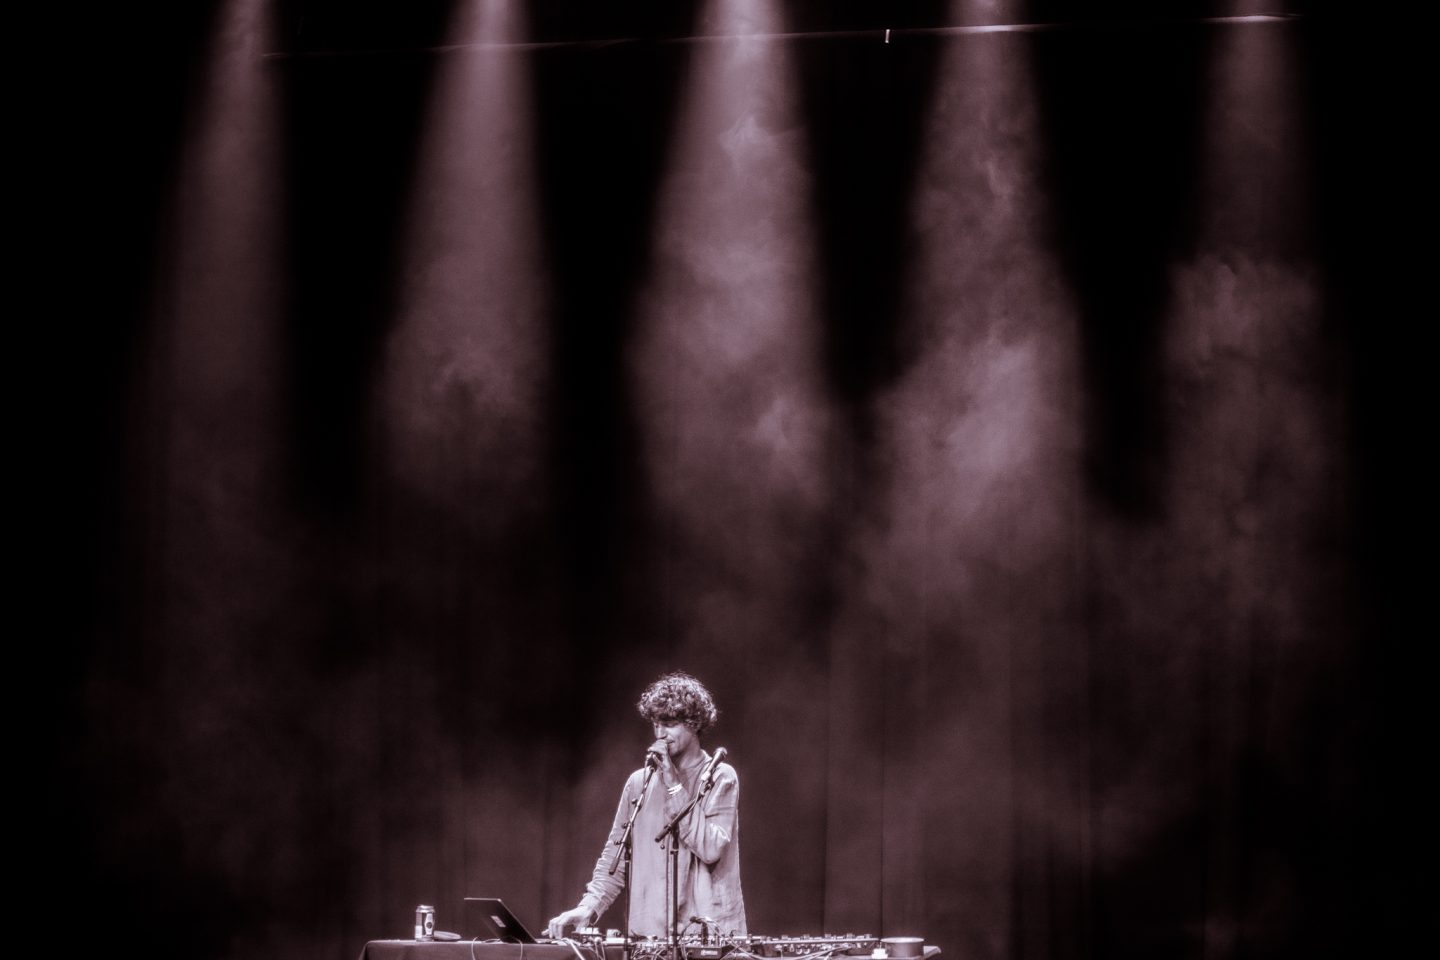 Cosmo Sheldrake at Lincoln Hall by Liina Raud Photography